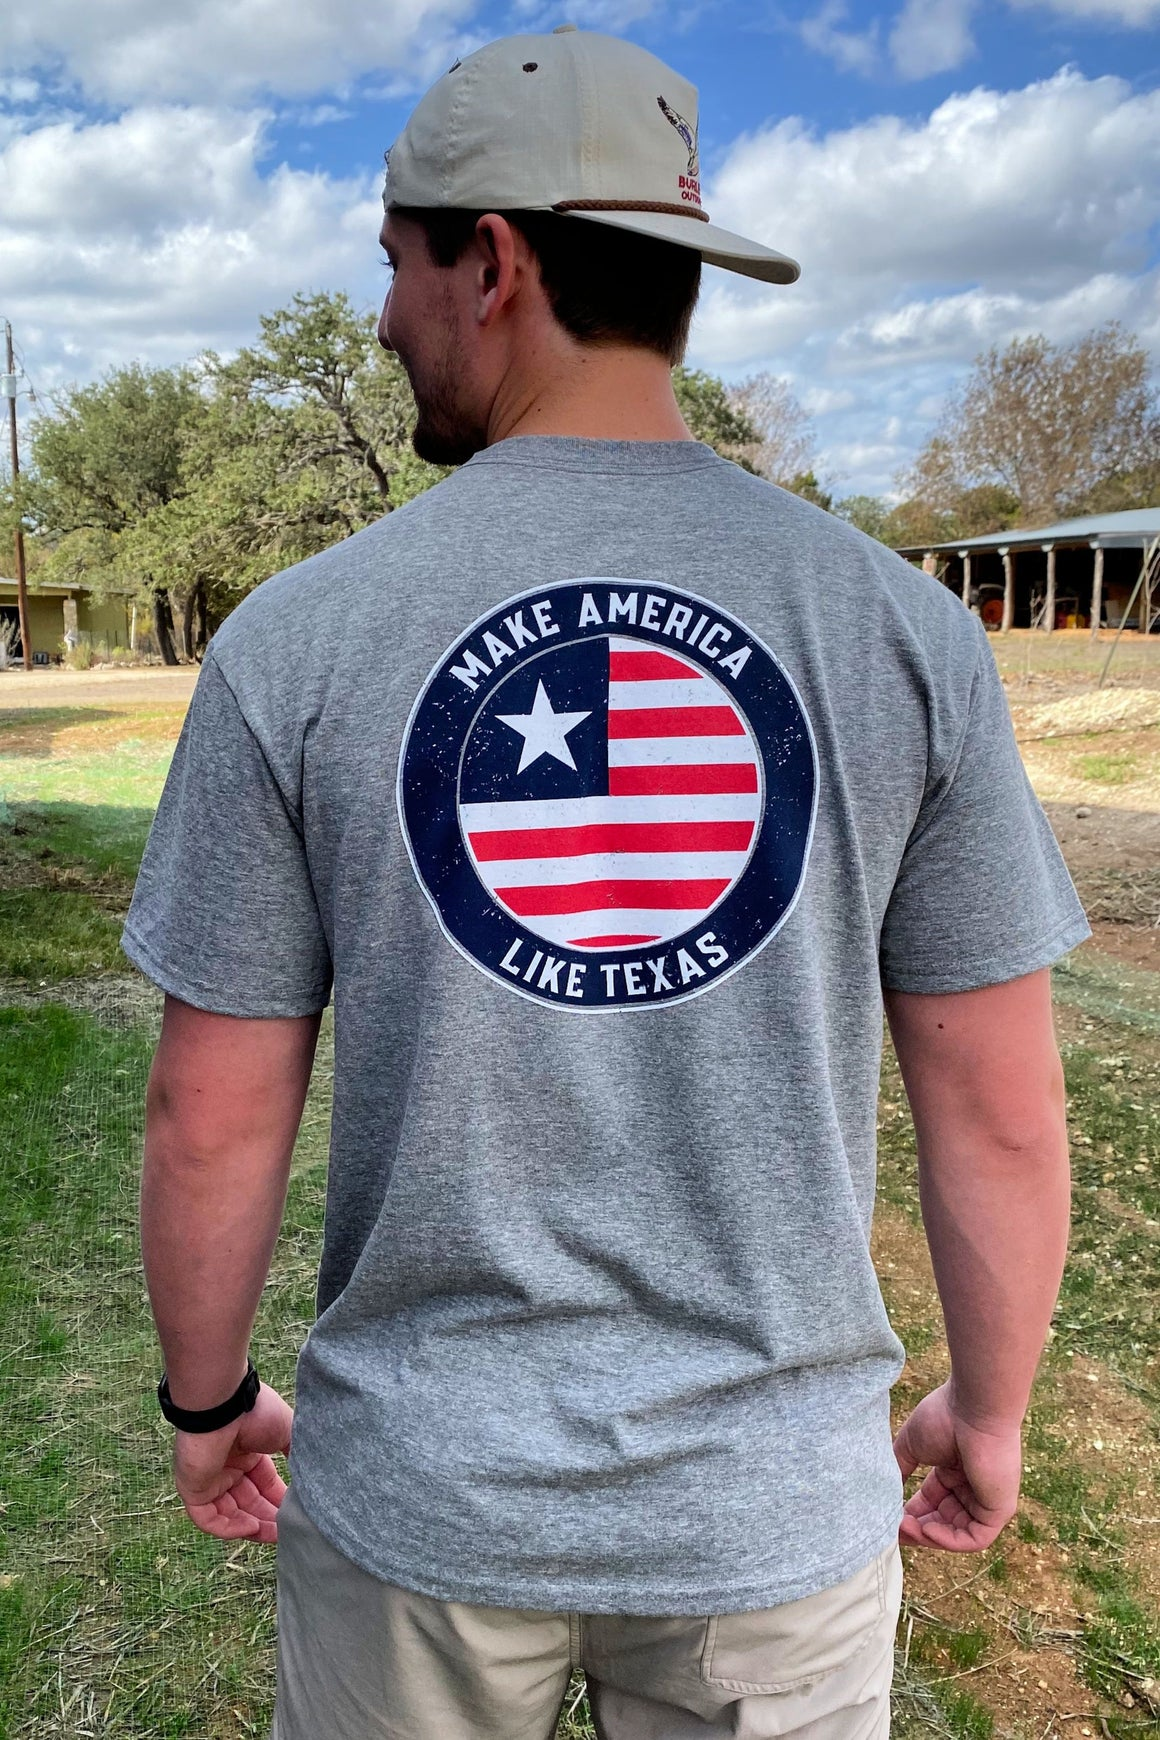 Make America Like Texas - Gray